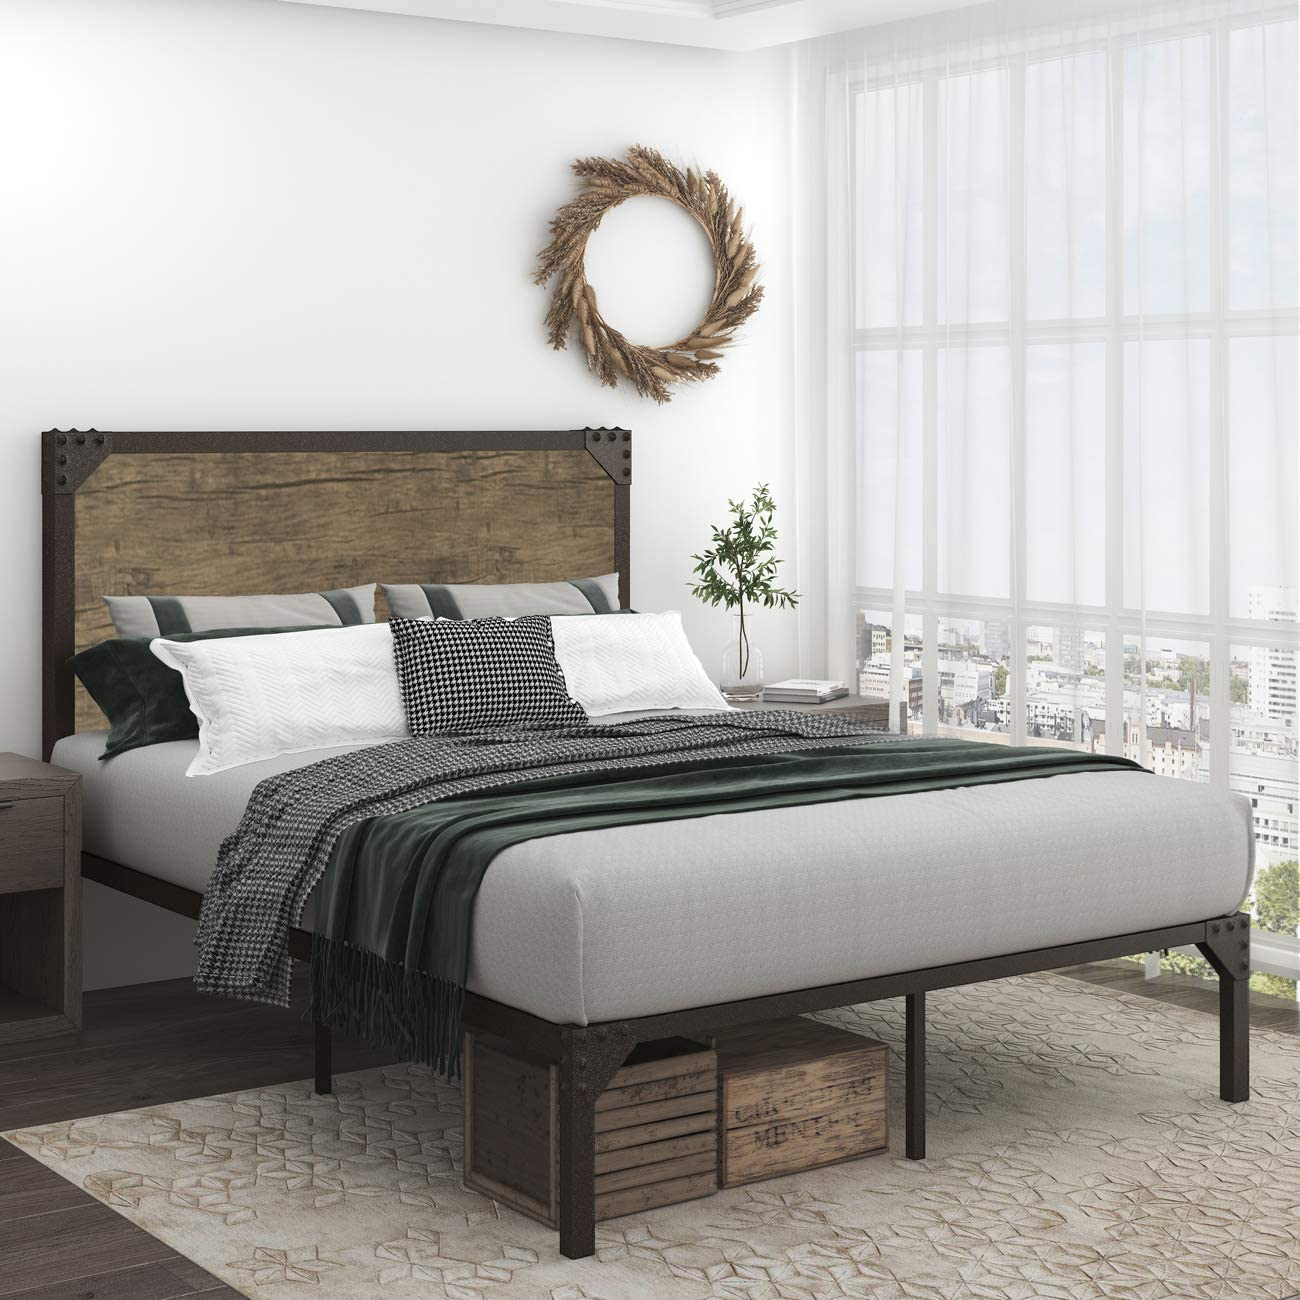 Amazon Com Allewie Queen Size Bed Frame With Headboard Strong Steel Slat Support Mattress Foundation No Box Spring Needed Easy Assembly Kitchen Dining